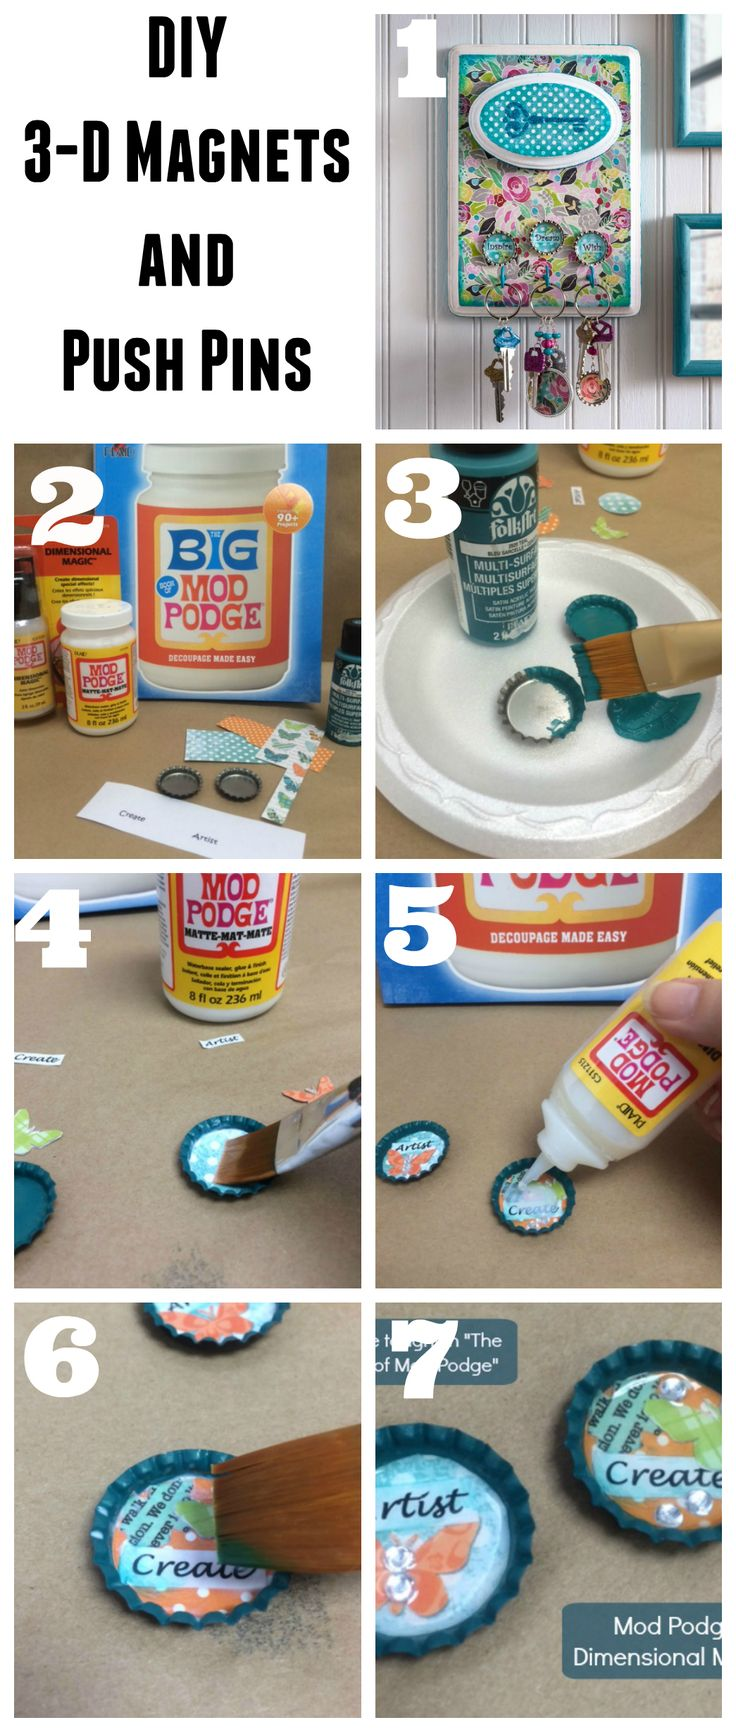 How to make 3-D Magnets and push pins using mod podge dimensional magic. Perfect DIY to craft on your own or with kids!